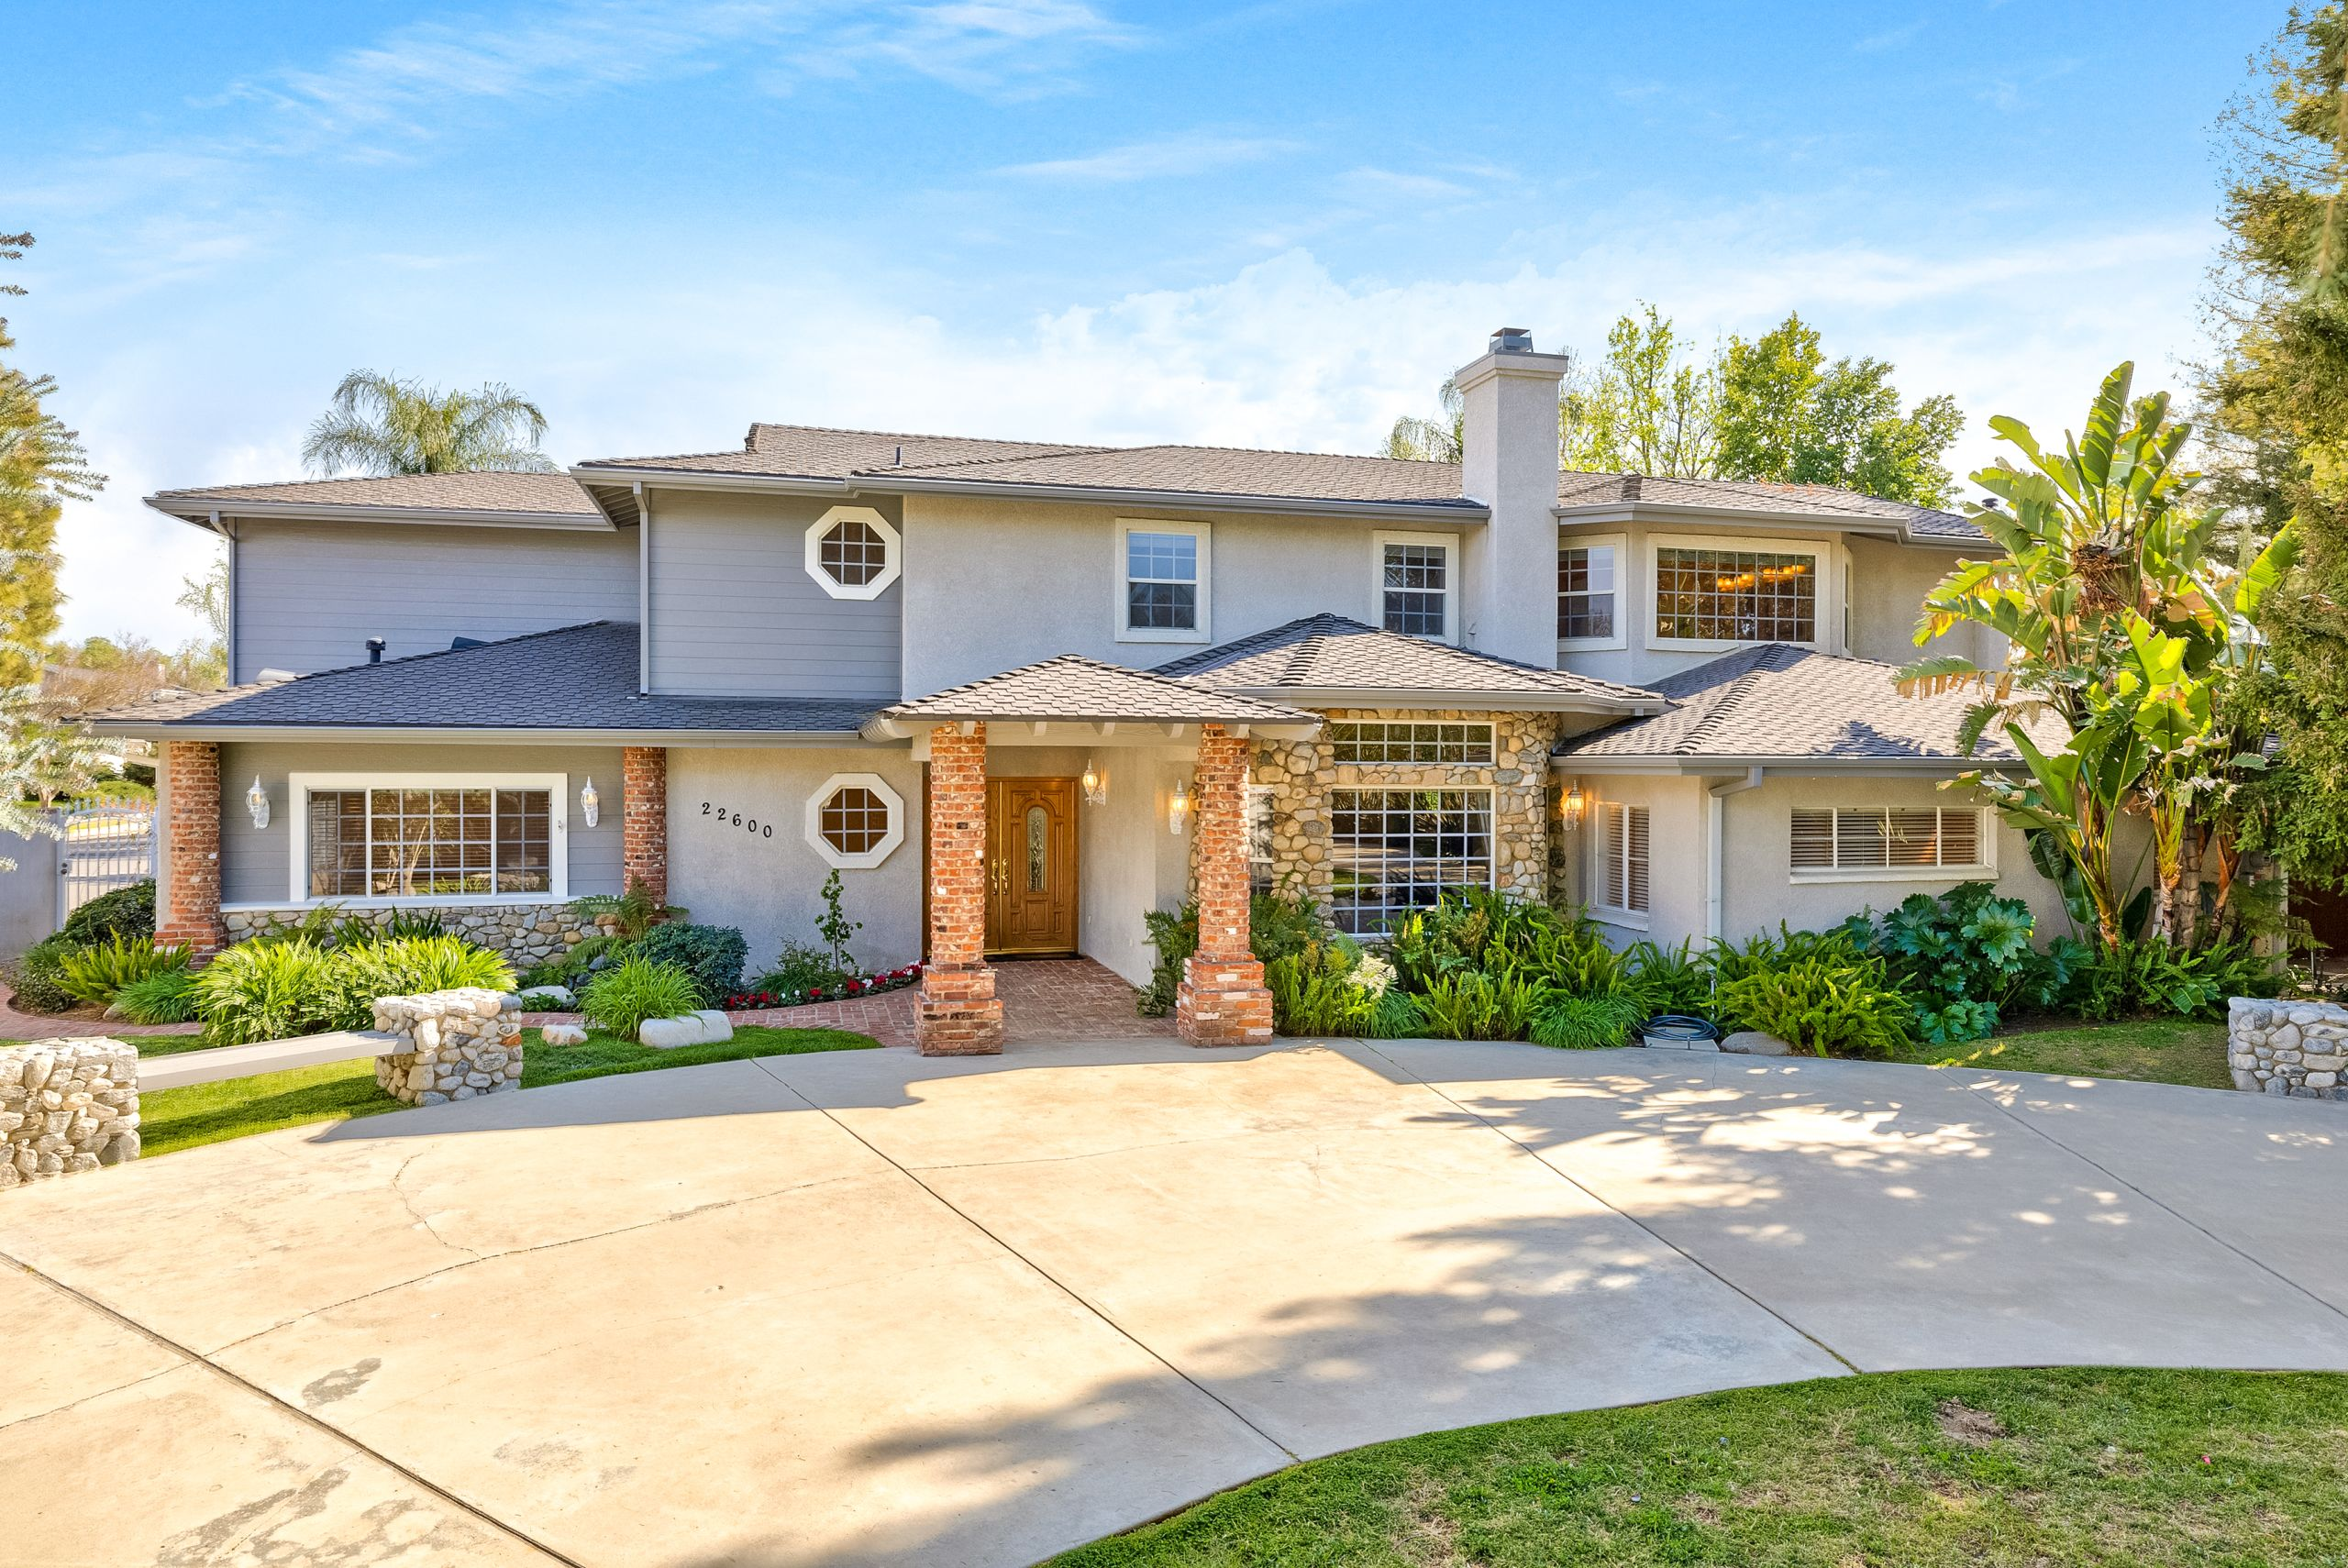 This Estate Home offers 5 bedrooms and over 4700 square feet.